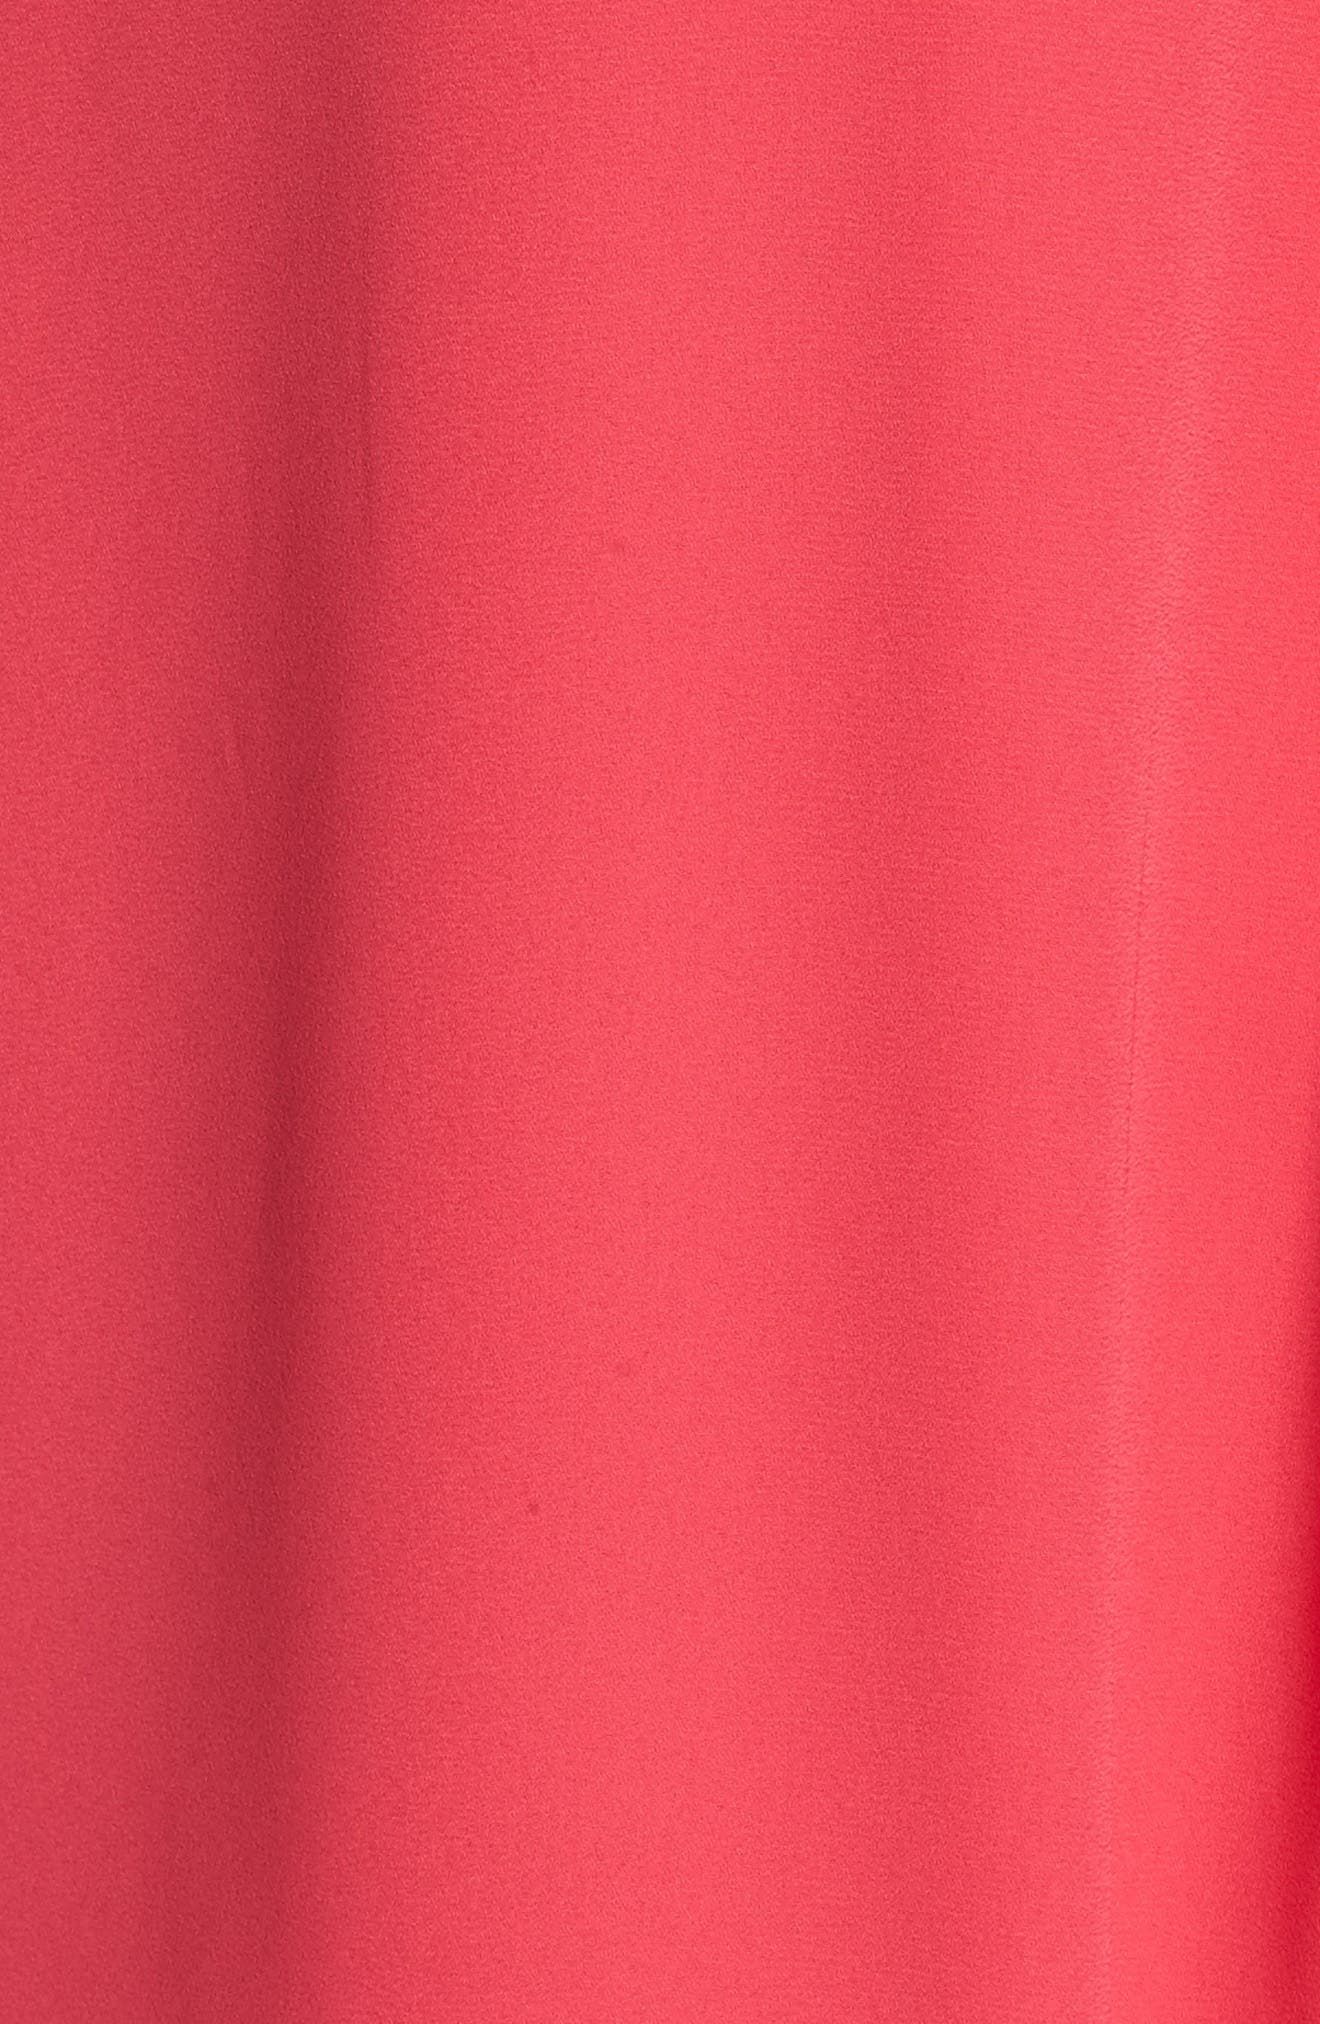 Pleated Blouse,                             Alternate thumbnail 5, color,                             Vibrant Pink